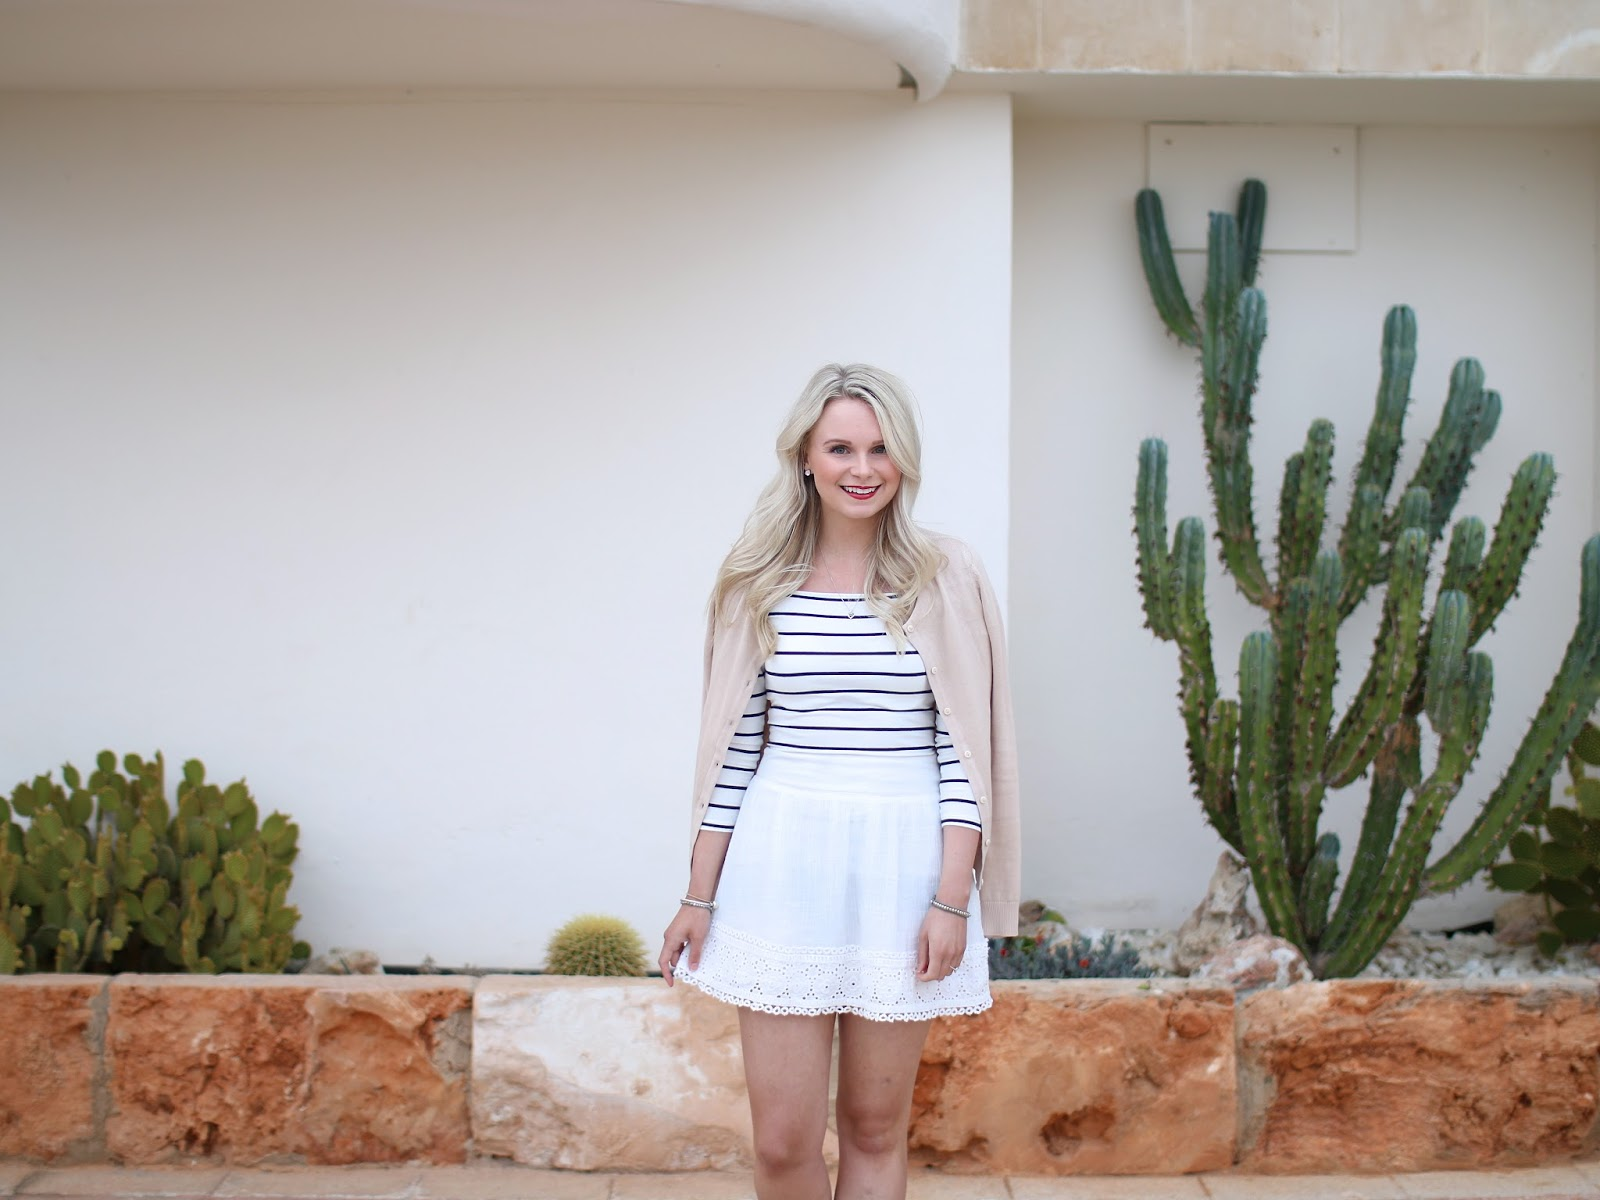 nautical outfit in spain